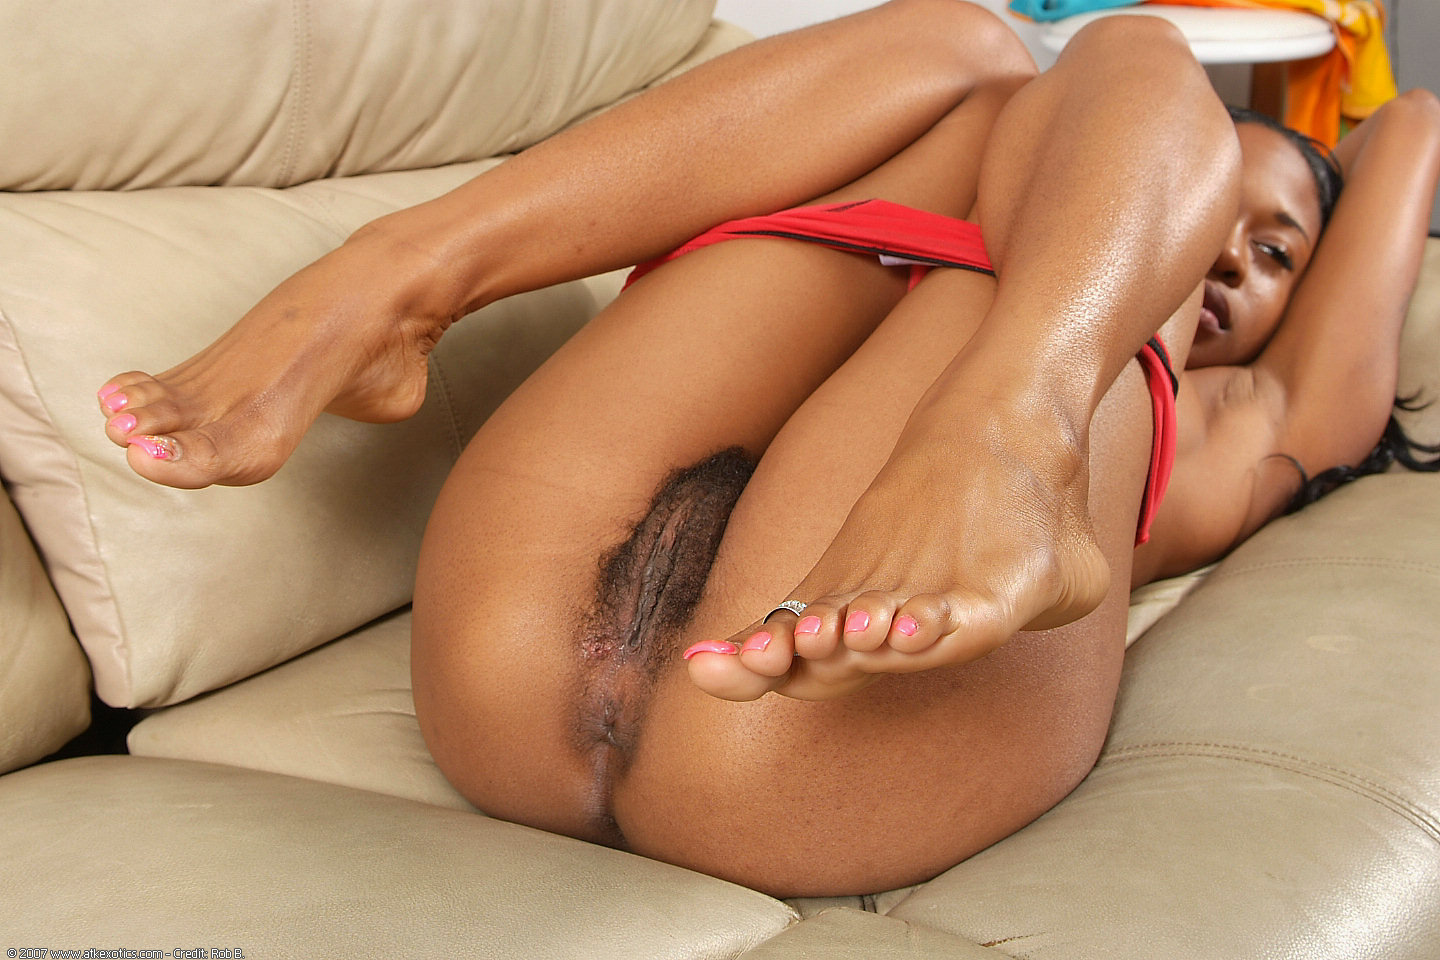 Latina Masturbation Dildo Feet